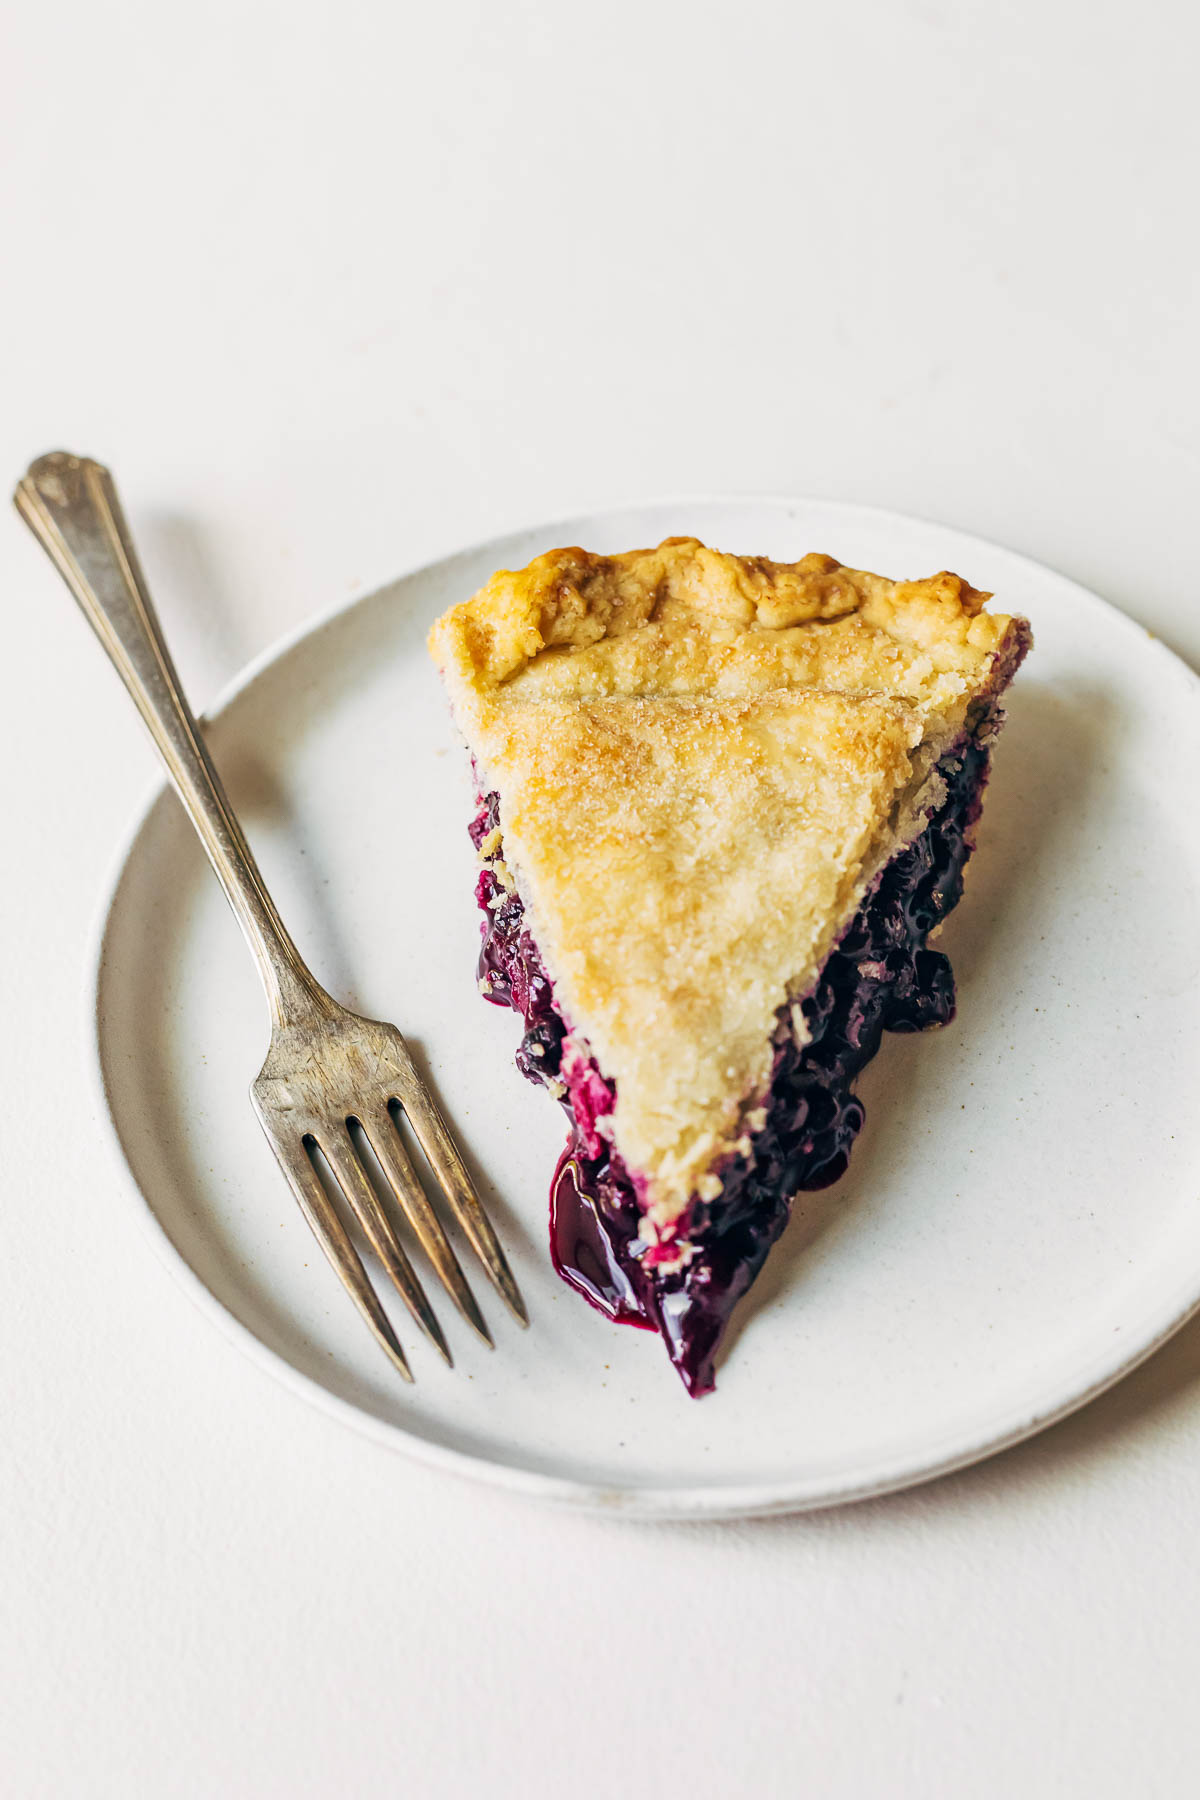 Slice of blueberry pie on a plate with a fork.